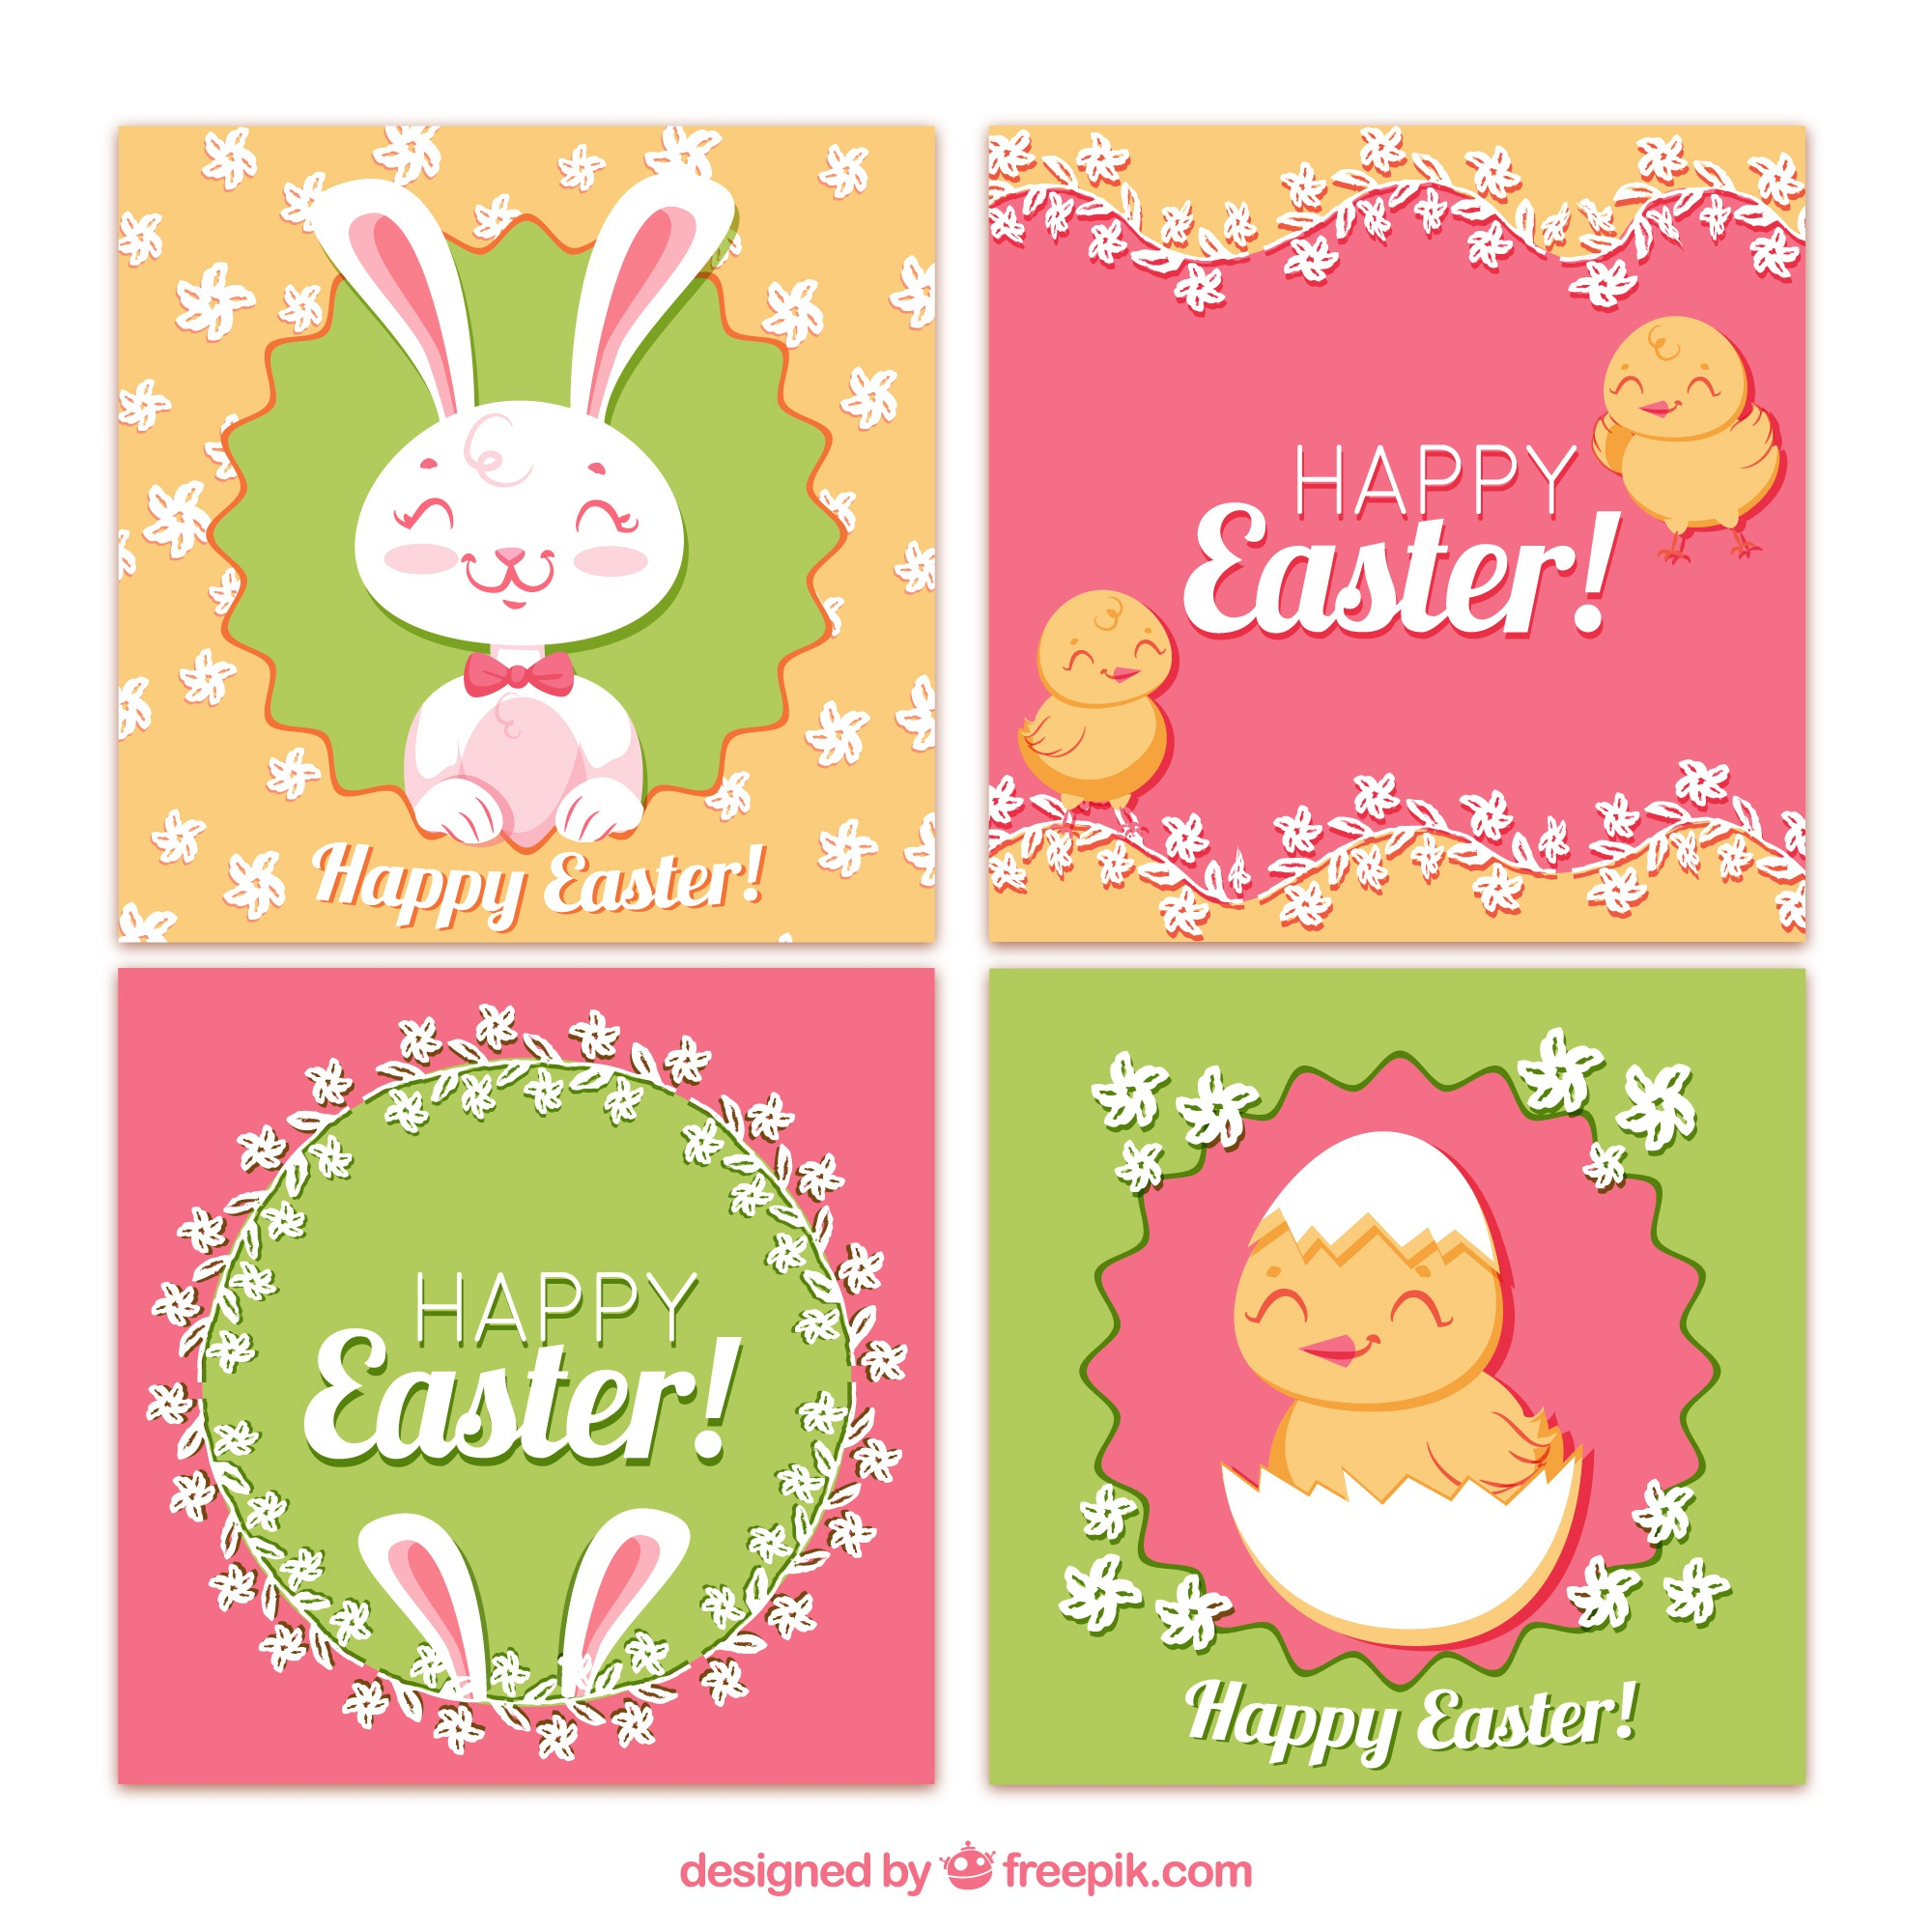 Easter day cards collection with cute animals